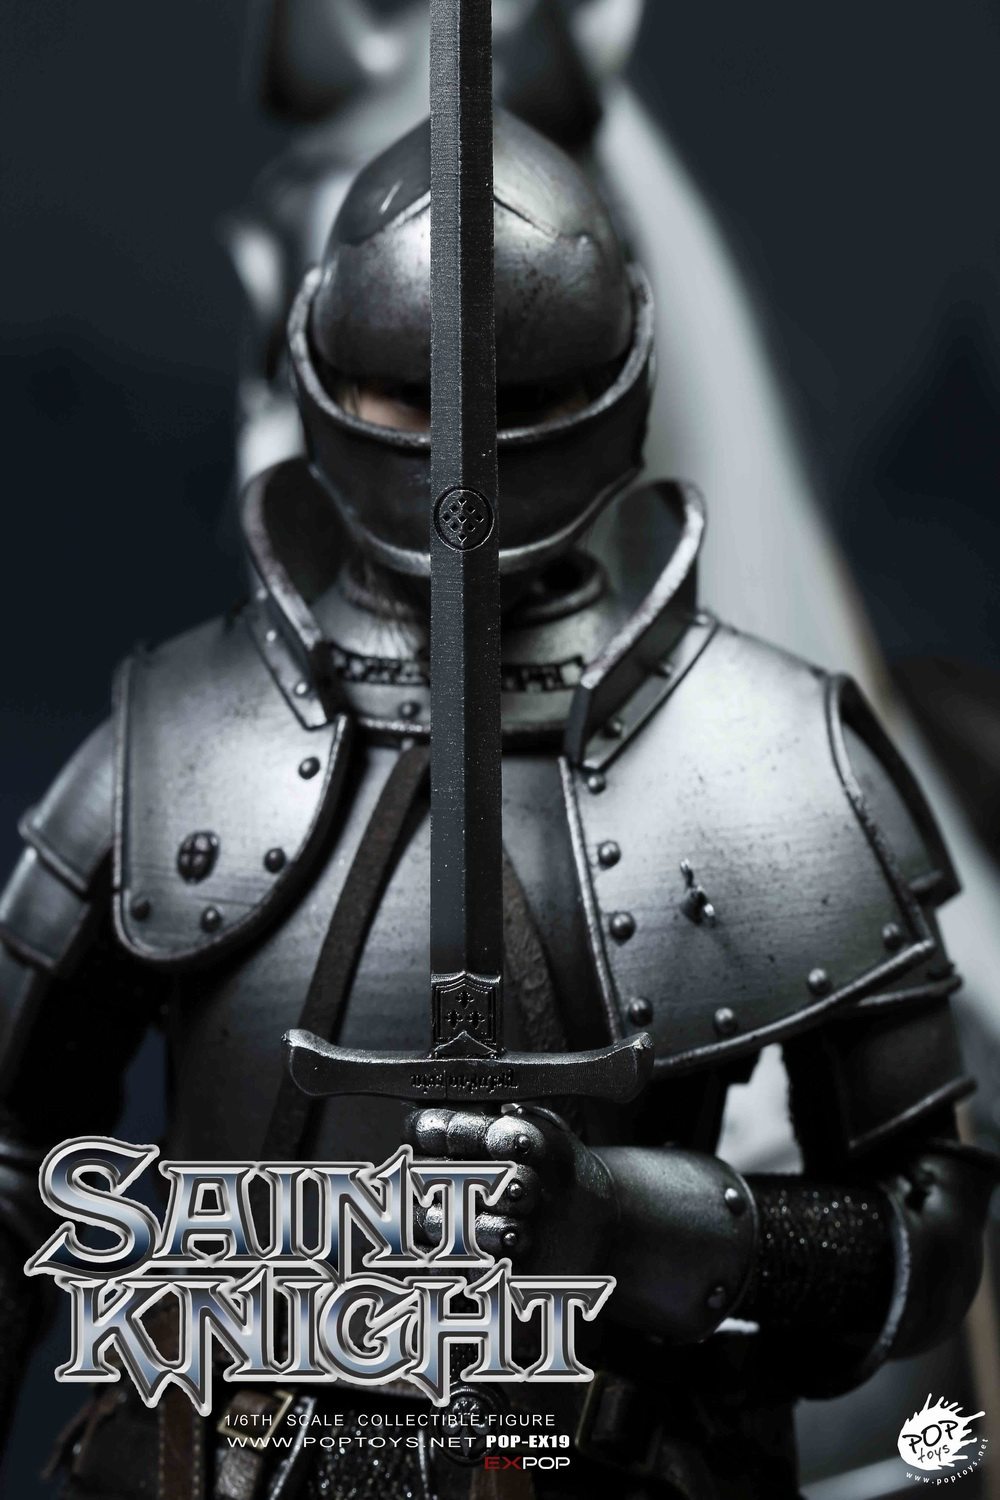 NEW PRODUCT: POPTOYS New Products: 1/6 St. Knights - Assault Edition & Triumph Edition & Iron Armor (POP-EX19 ABC) 16390910